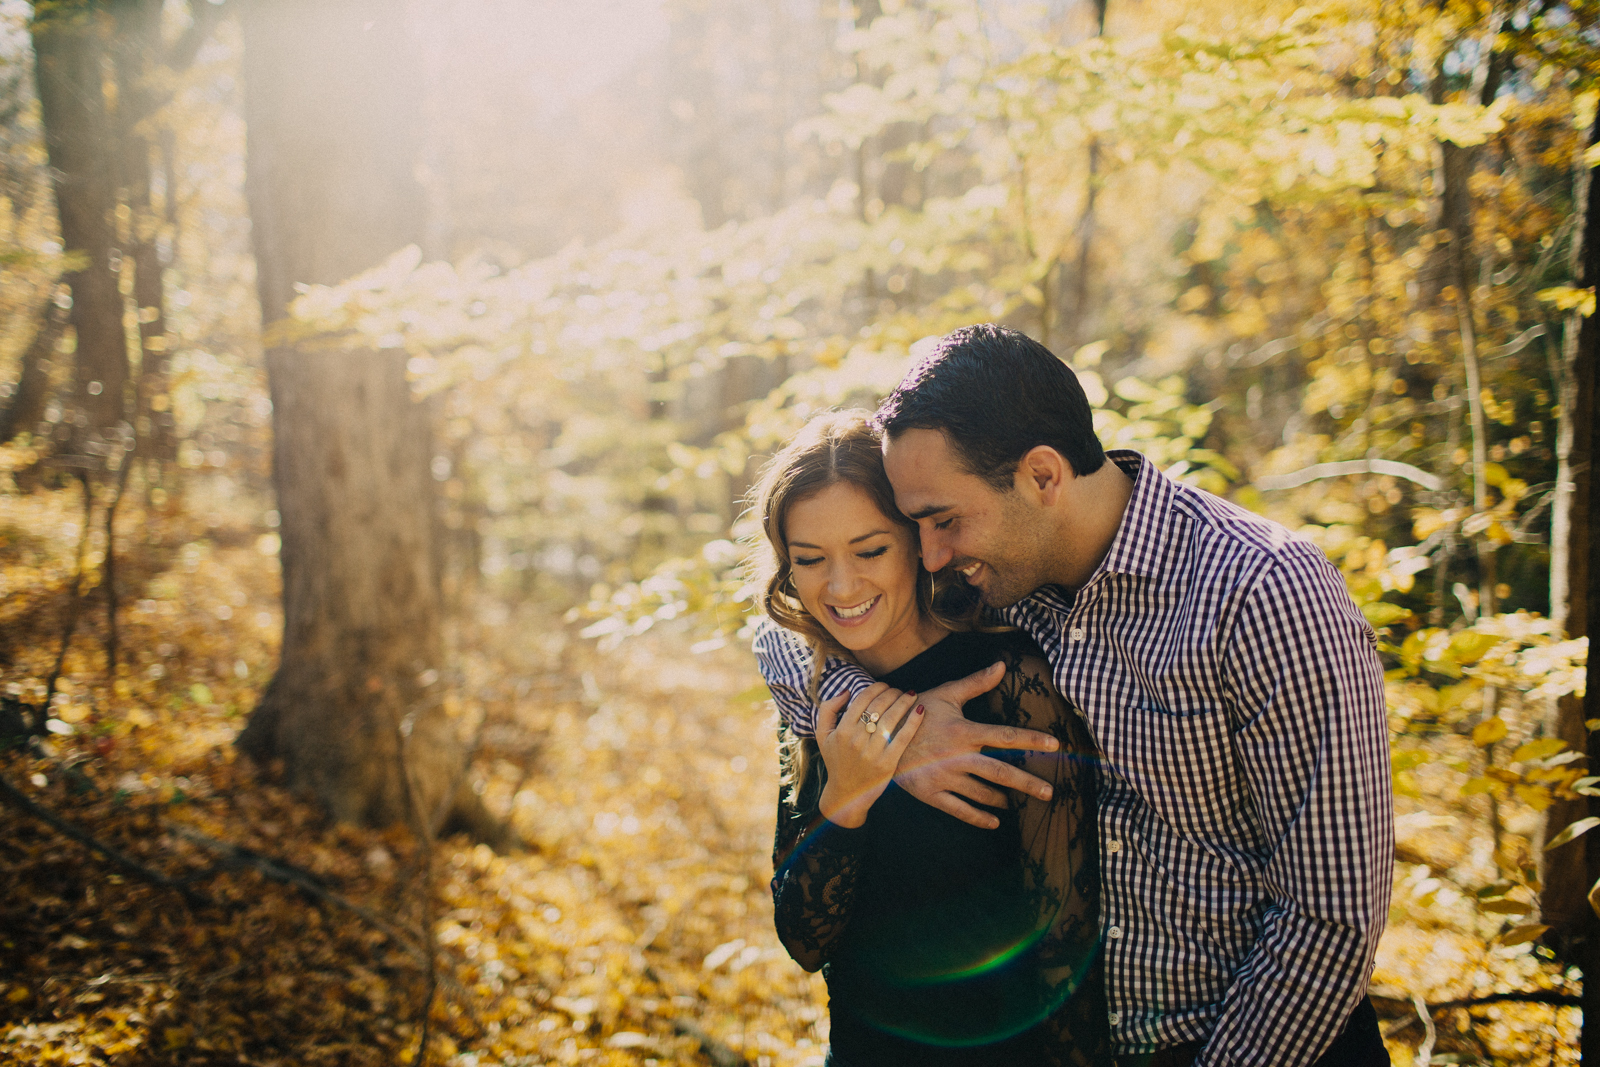 matea state park indiana fort wayne engagement session sarah cusson photography-2.jpg